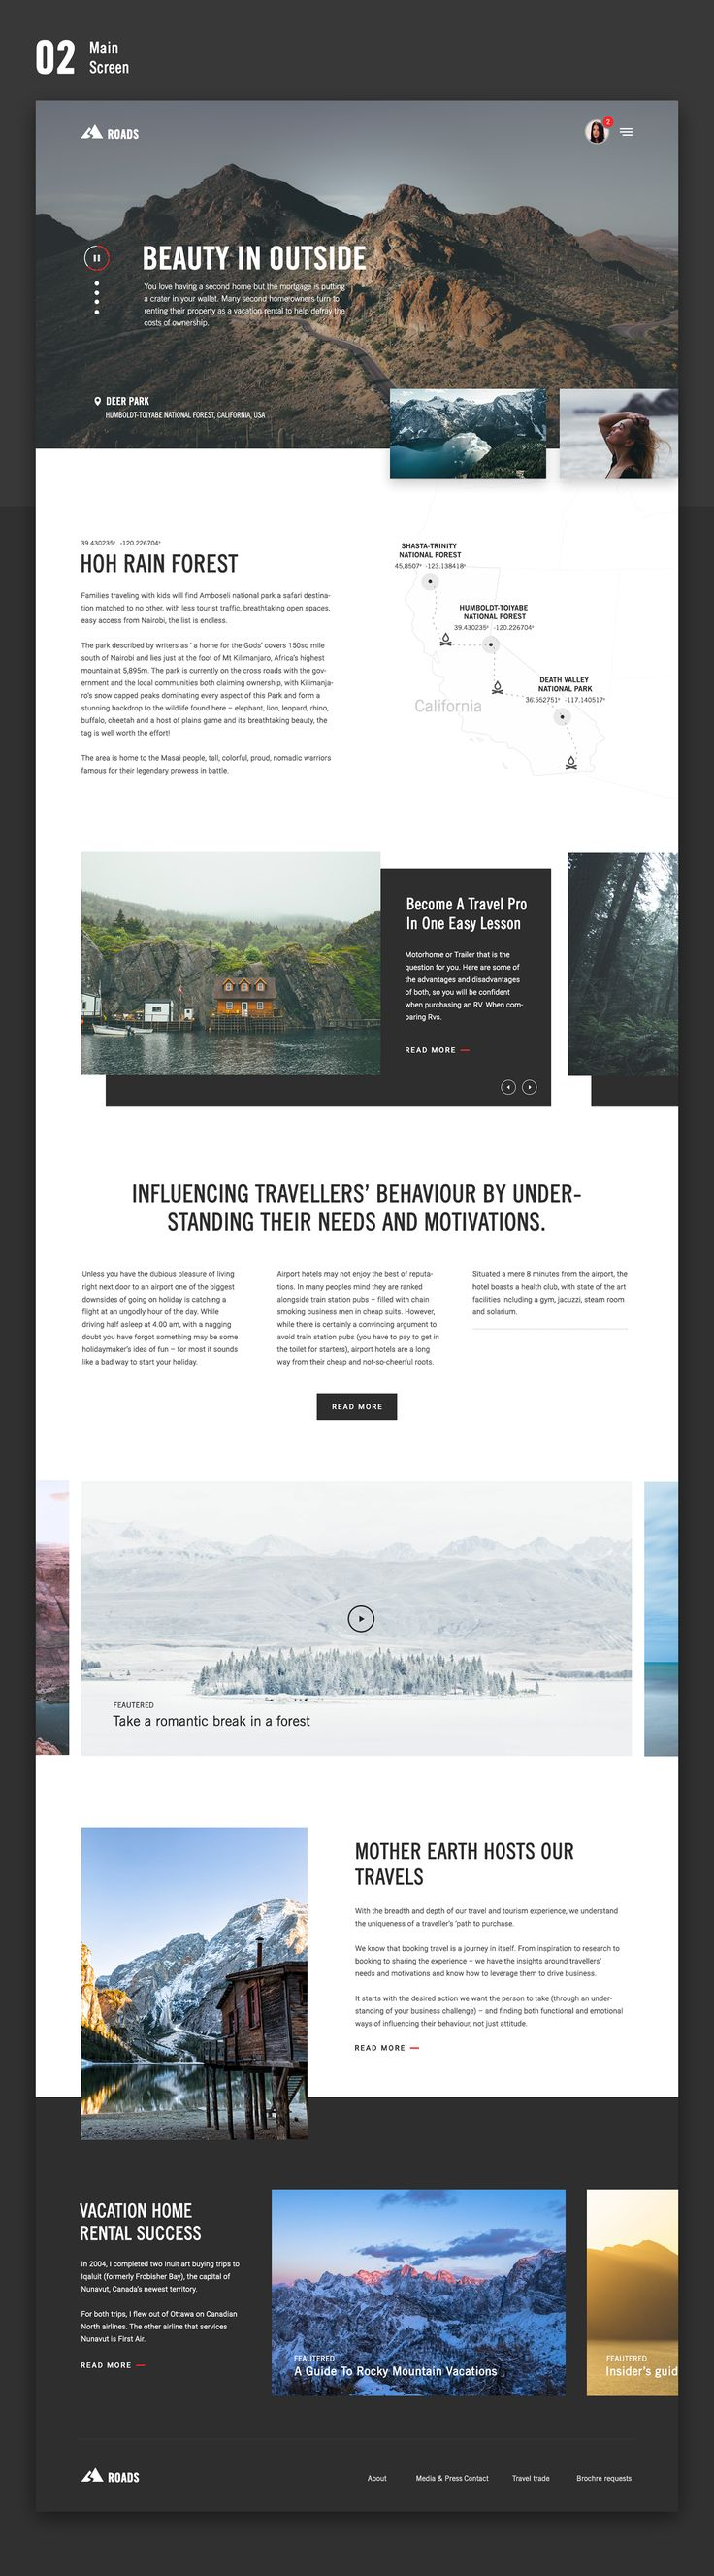 Roads is the storytelling platform for travelers, photographers and filmmakers.